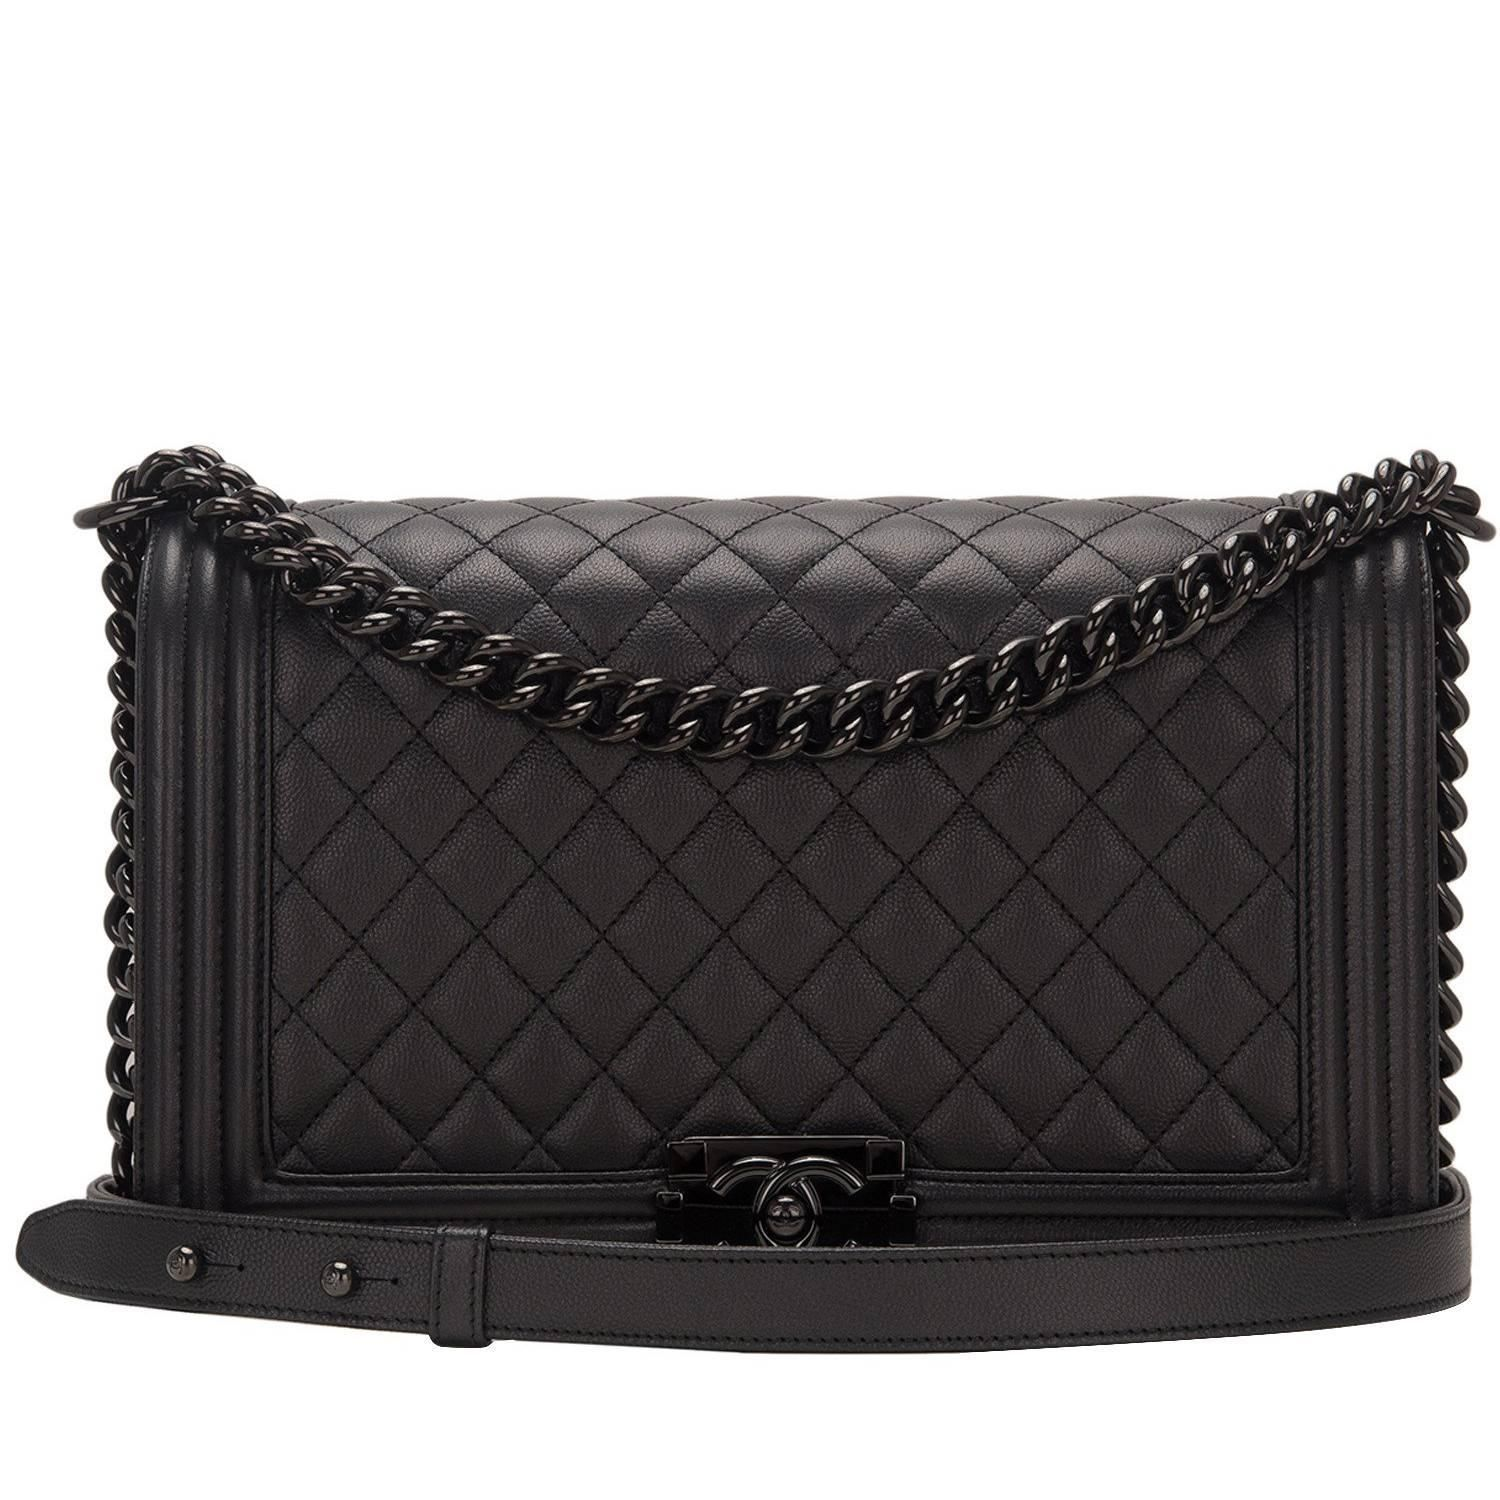 Chanel New Medium So Black Caviar Leather Iridescent Boy Bag ❤ liked on Polyvore  featuring bags 7262b9fbbb134